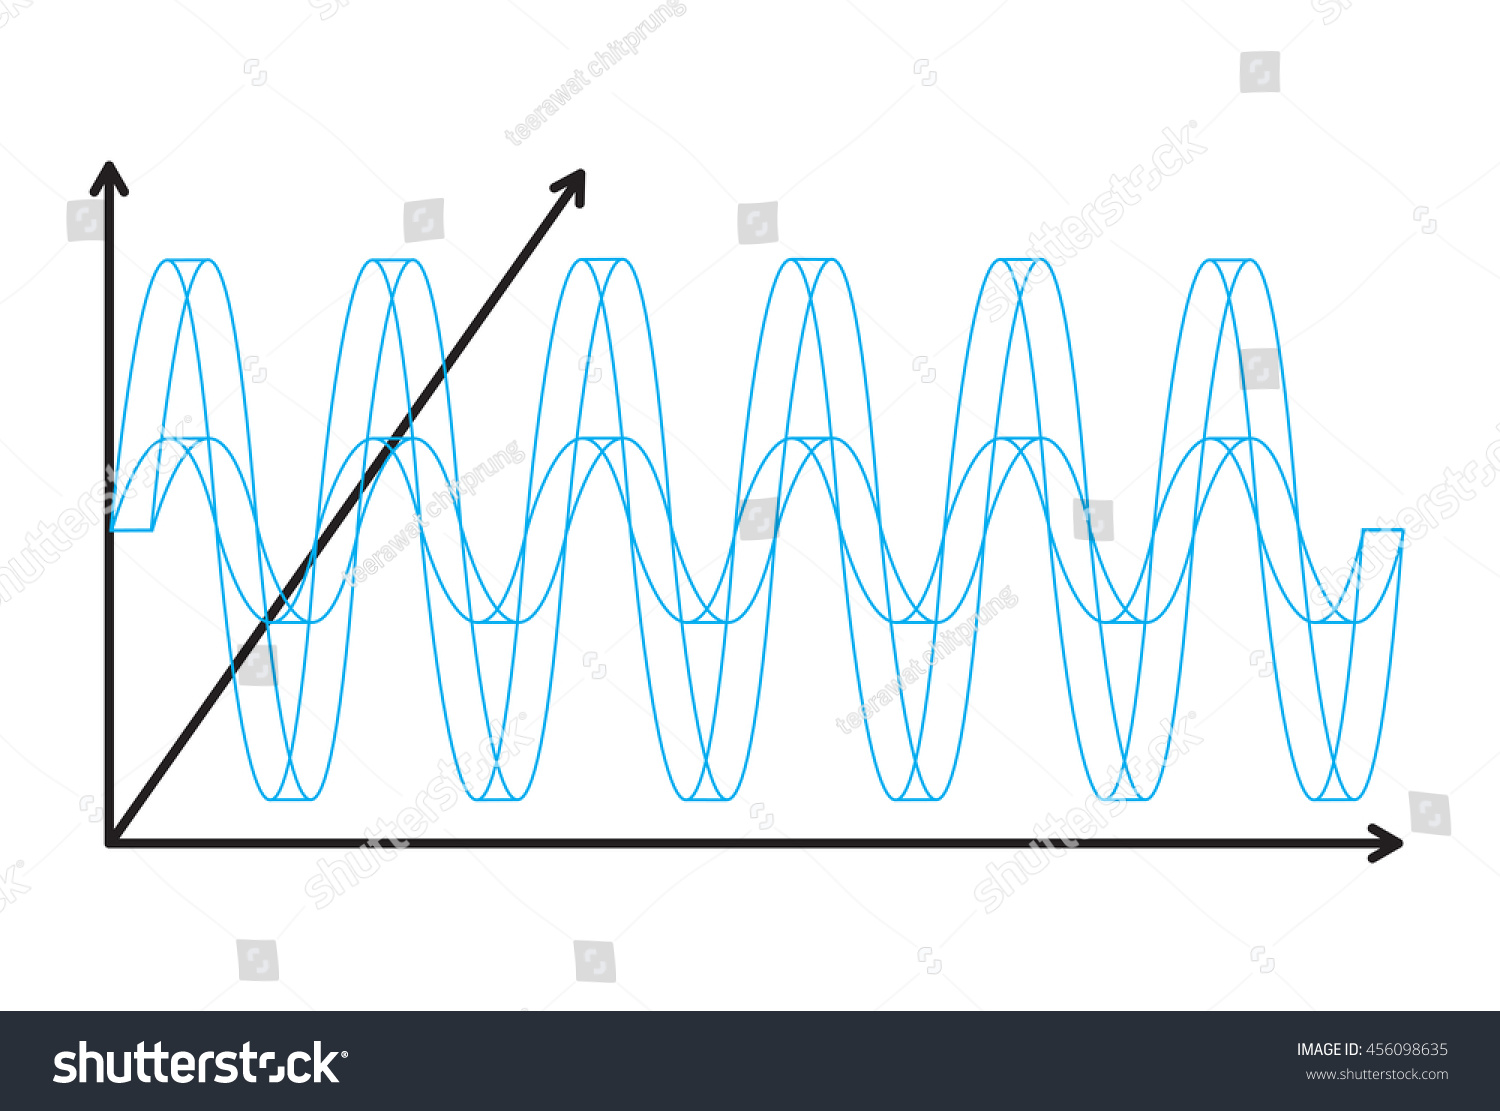 Sine wave signal graph vector illustration stock vector 456098635 sine wave signal graph vector illustration stock vector 456098635 shutterstock ccuart Images